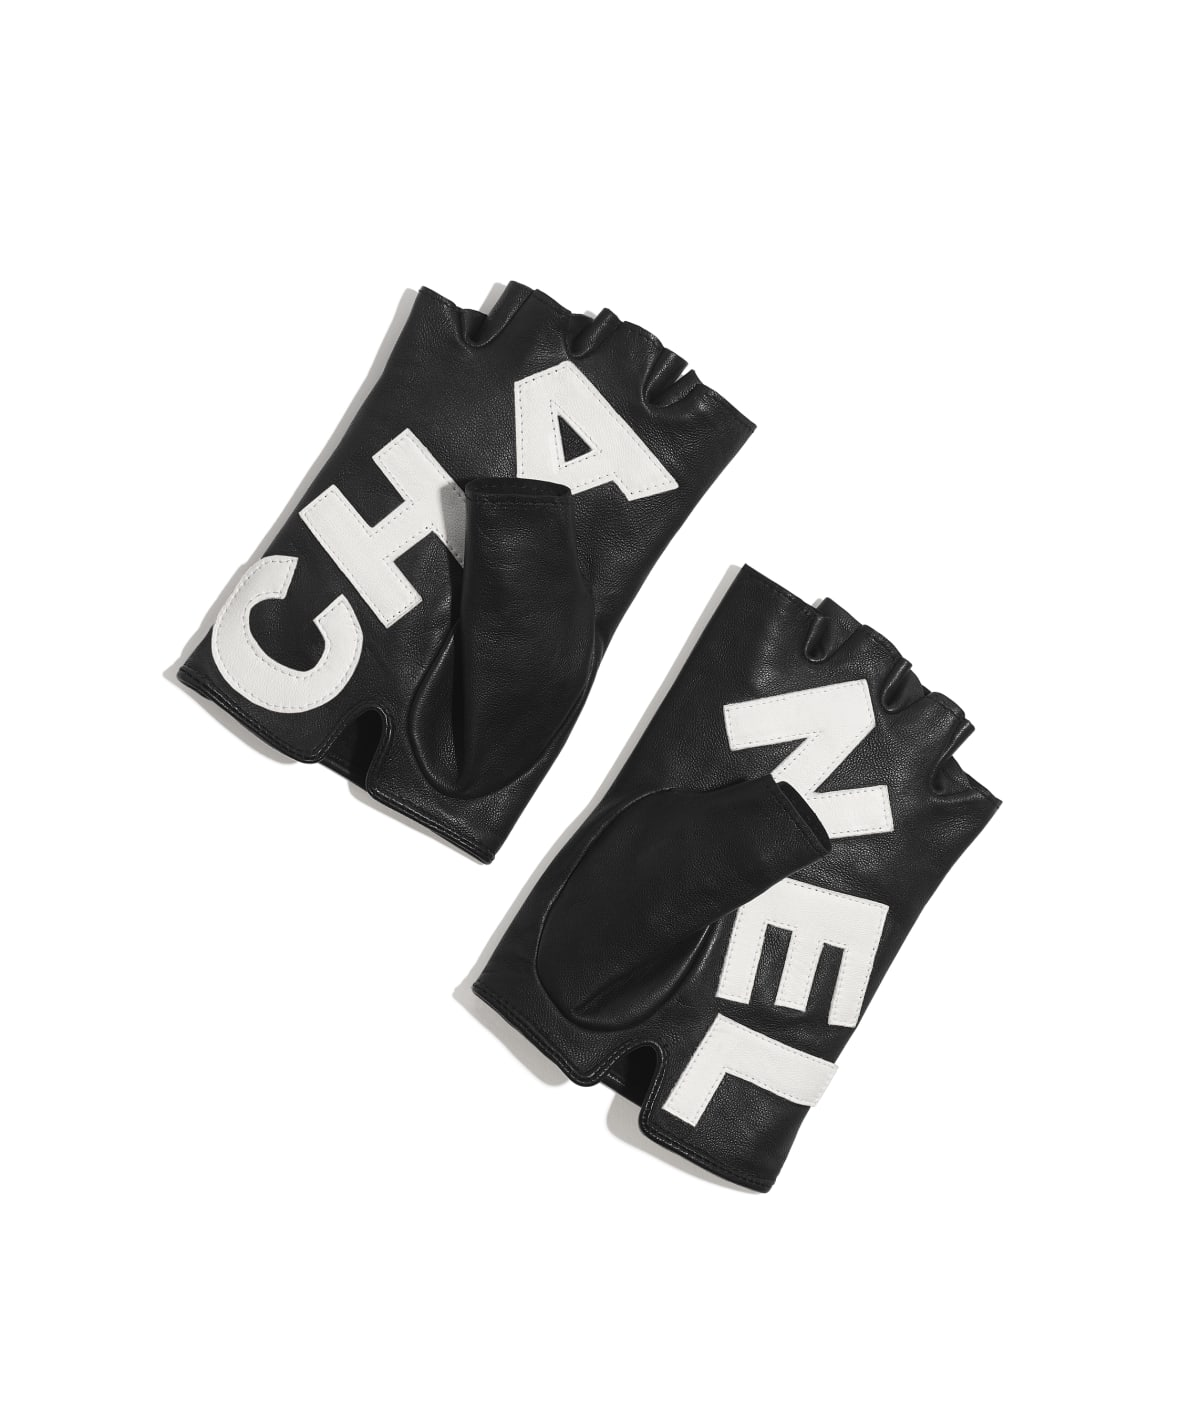 Gloves - Other Accessories - CHANEL